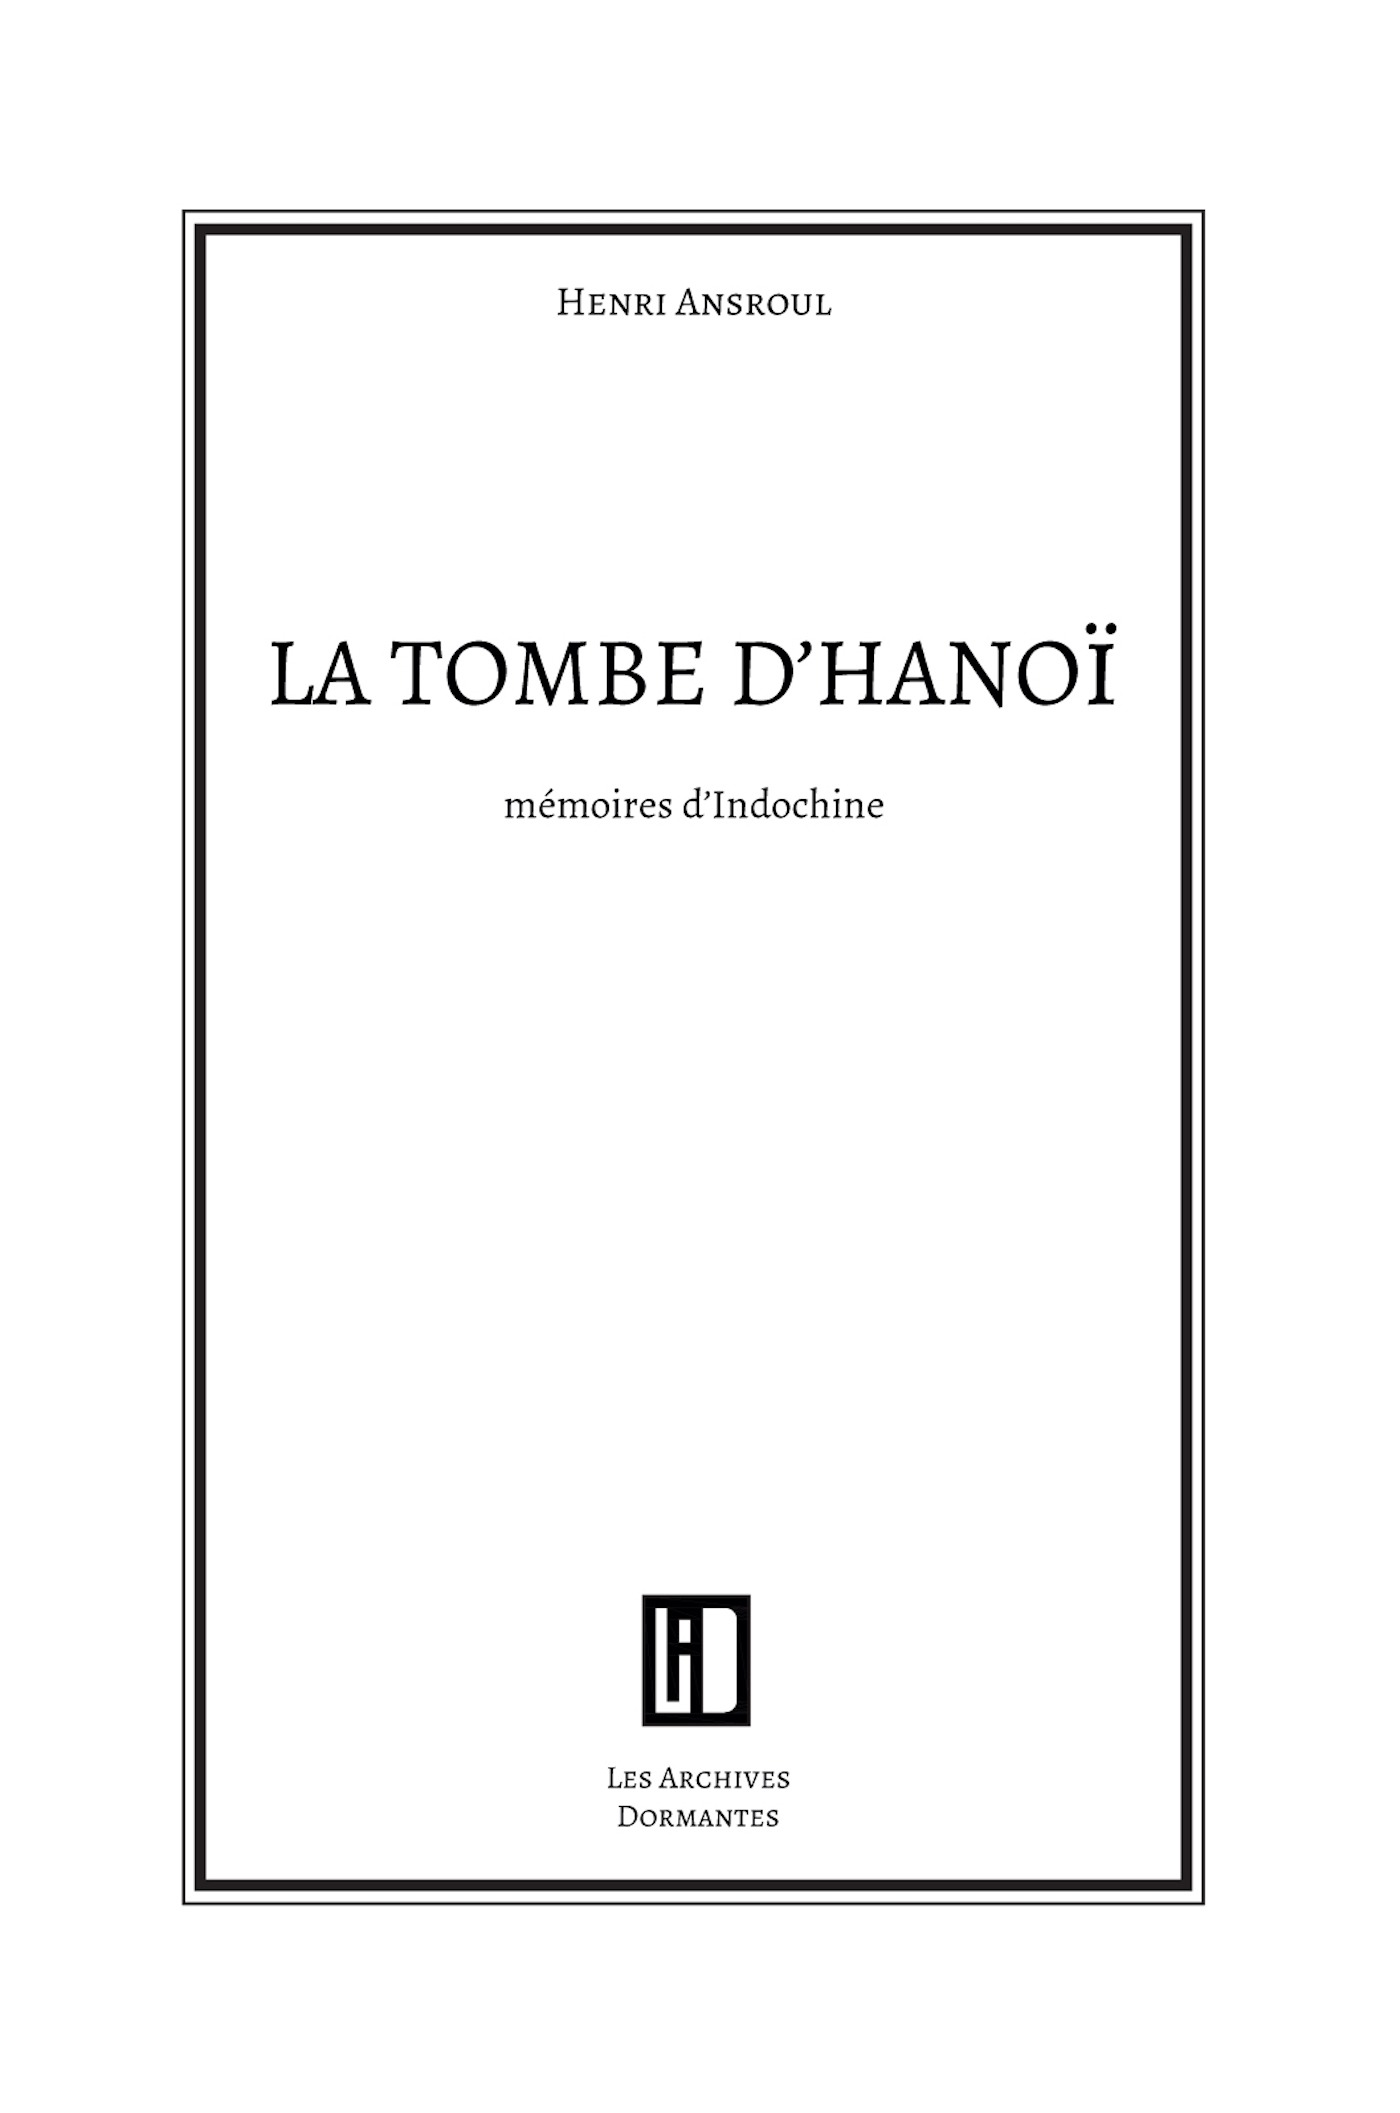 La tombe d'Hanoï, MÉMOIRES D'INDOCHINE